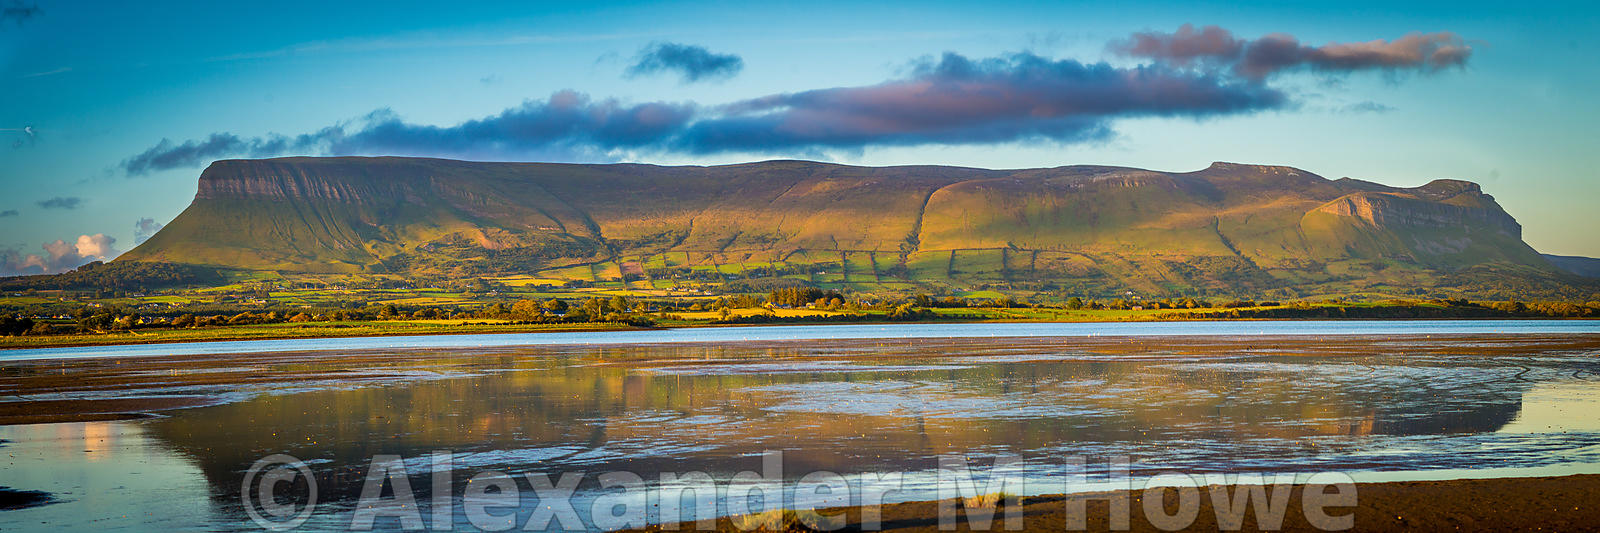 The imposing Benbulbin rock bathed in evening sunlight reflecting in the water of Donegal Bay